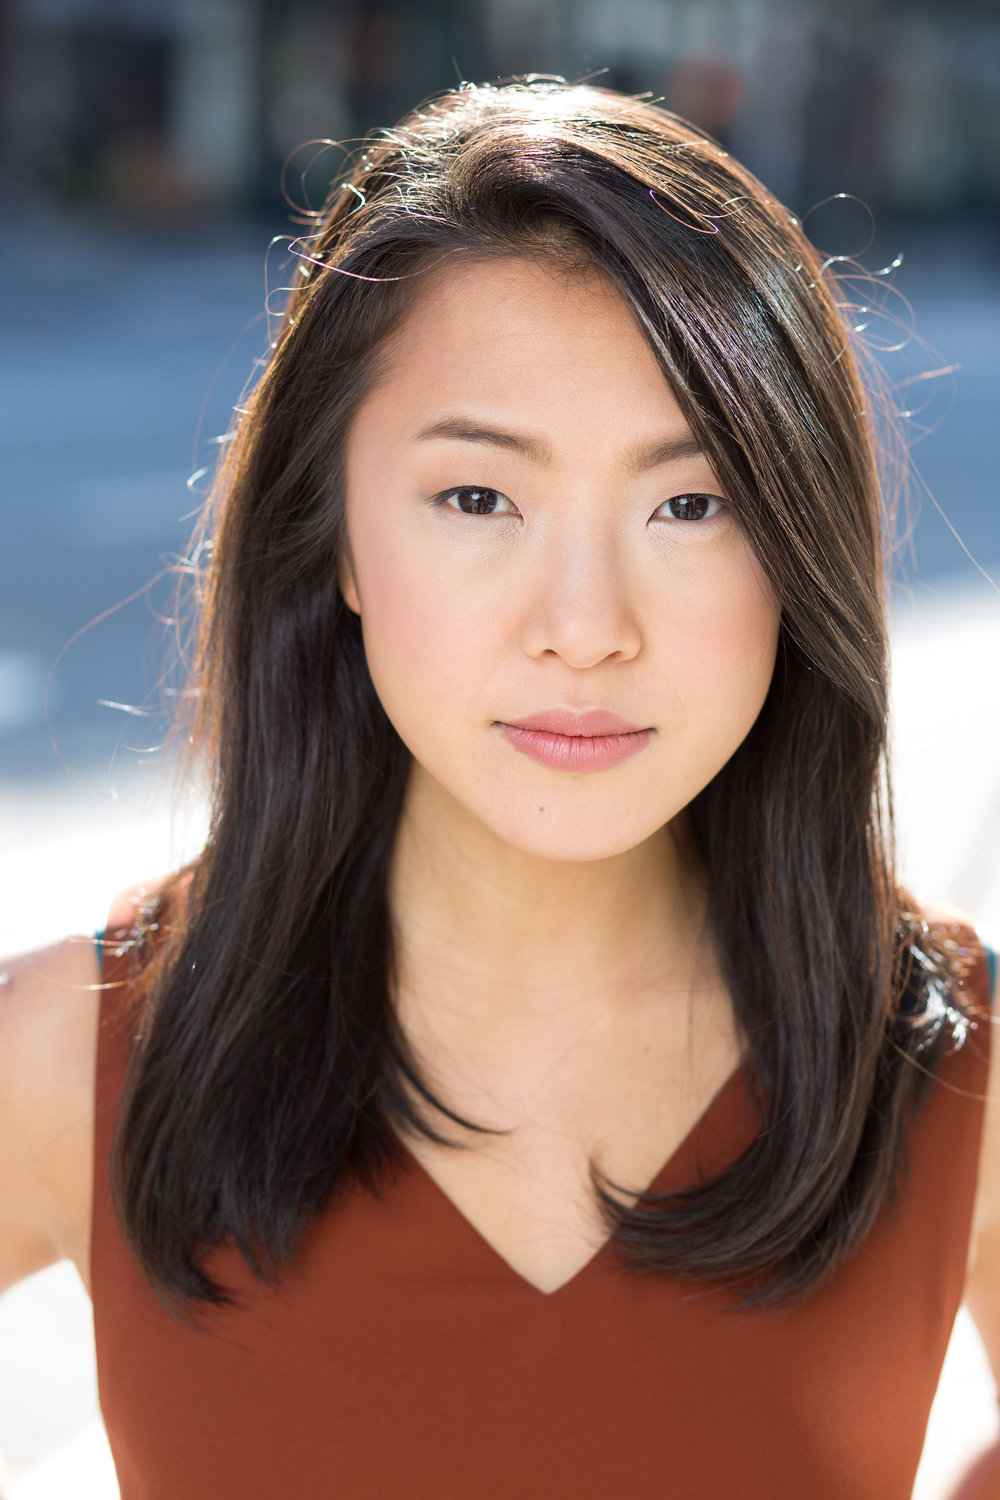 Hey there. I'm Pearl Shin, and I'm an actor.Questions? Email me at pshin310@gmail.comINDUSTRY UPDATES - February-March 2019: Appearing in good friday at The Flea written by Kristiana Rae Colón and directed by Sherri Eden Barber.September/October 2018: Workshopping the full-length musical, The Lorikeet, at The Flea. Directed by Eugene Ma.August 2018: Signed to Prestigious Models Asian Talent Agency.August 2018: Appearing in Serena Bermans play, Sex Friends, as a part of the Samuel French Off Off Broadway Short Play Festival.June 2018: Appeared as a co-star in Jonathan Horwitz's office comedy series On the Line.March/April 2018: Lead in The Flea's Spring 2018 production of ms. estrada, a hip-hop remix of Lysistrata by the Q Brothers Collective and directed by Michelle Tattenbaum and Postell Pringle.